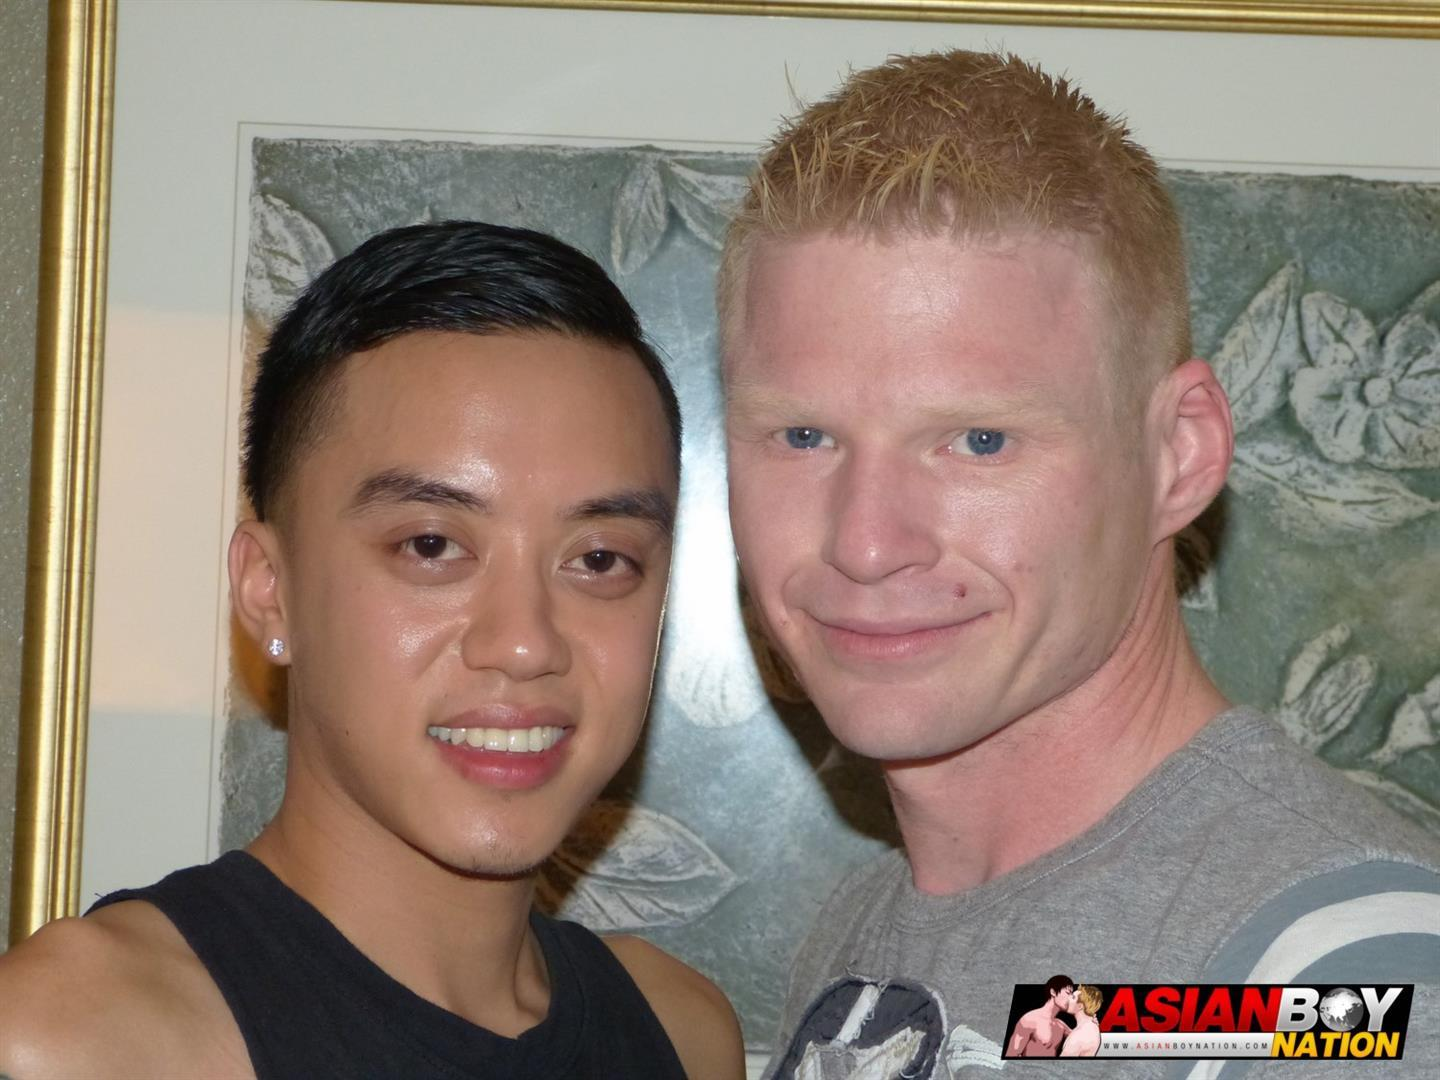 Asian Boy Nation Dax Masters and Coda Filthy Red Head Ginger Fucking An Asian Bottom Amateur Gay Porn 16 Asian Boy Gets Fucked By His Ginger Boyfriends Thick Cock